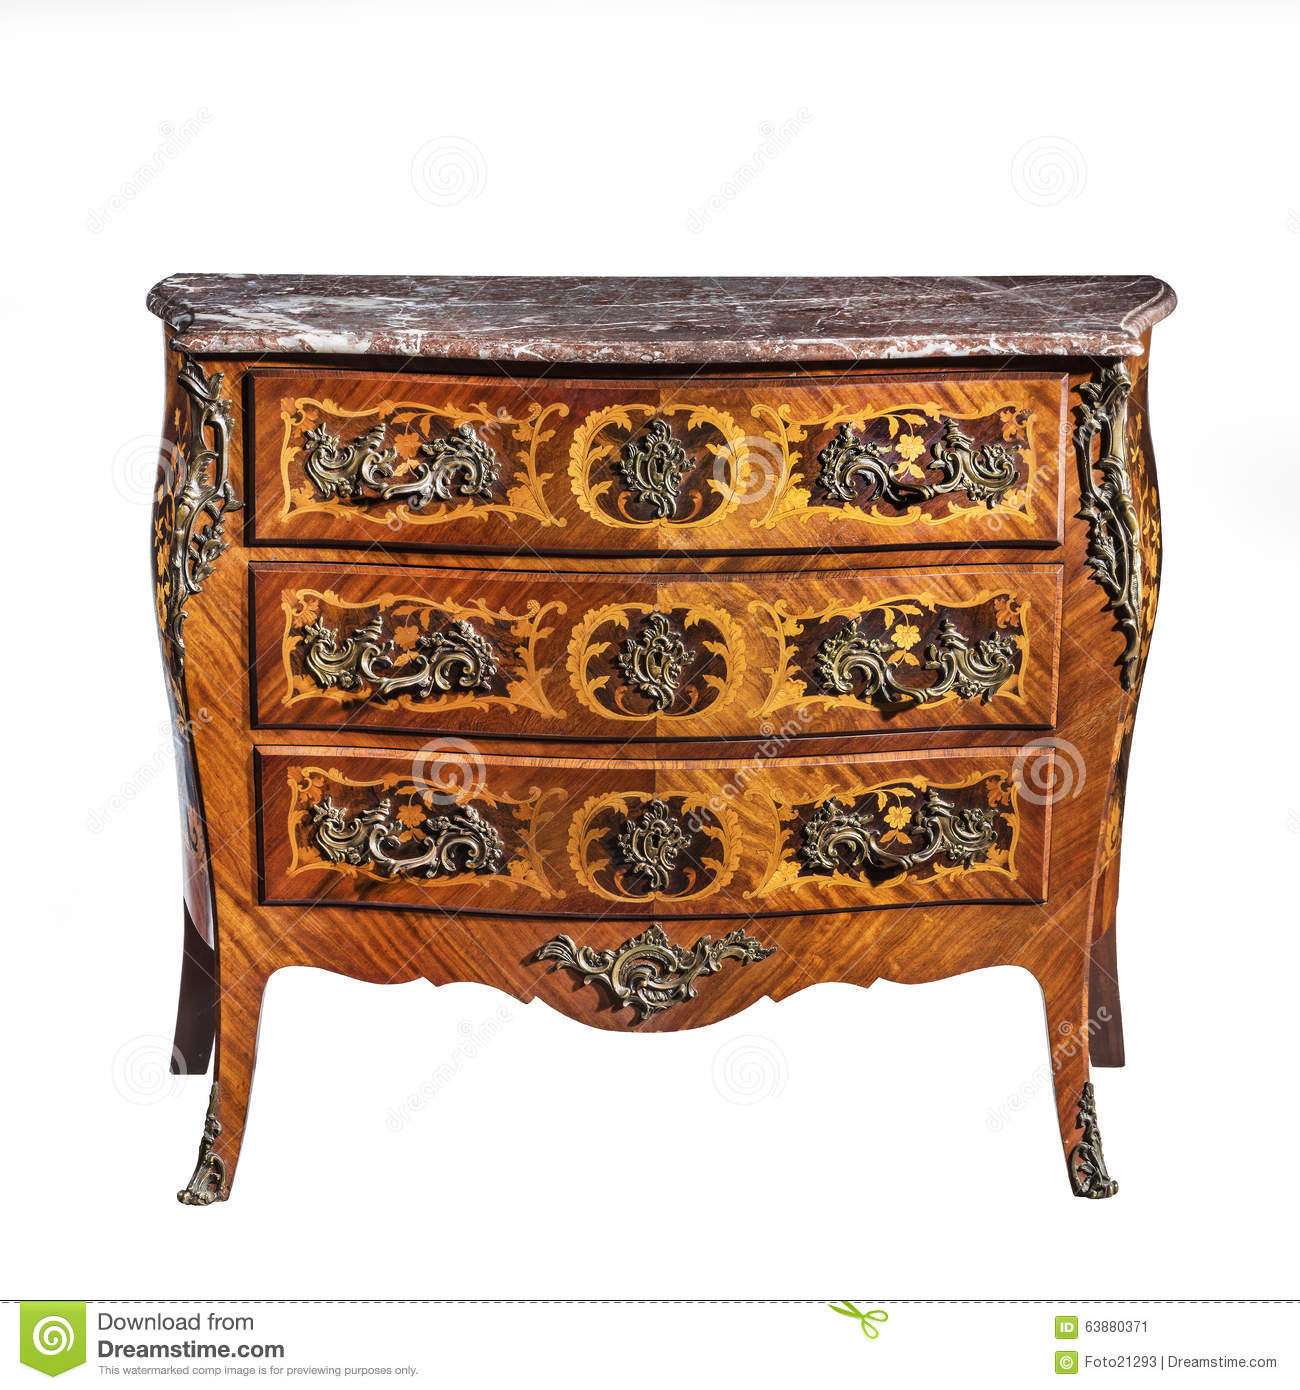 classic old original vintage wooden chest bureau commode. Black Bedroom Furniture Sets. Home Design Ideas